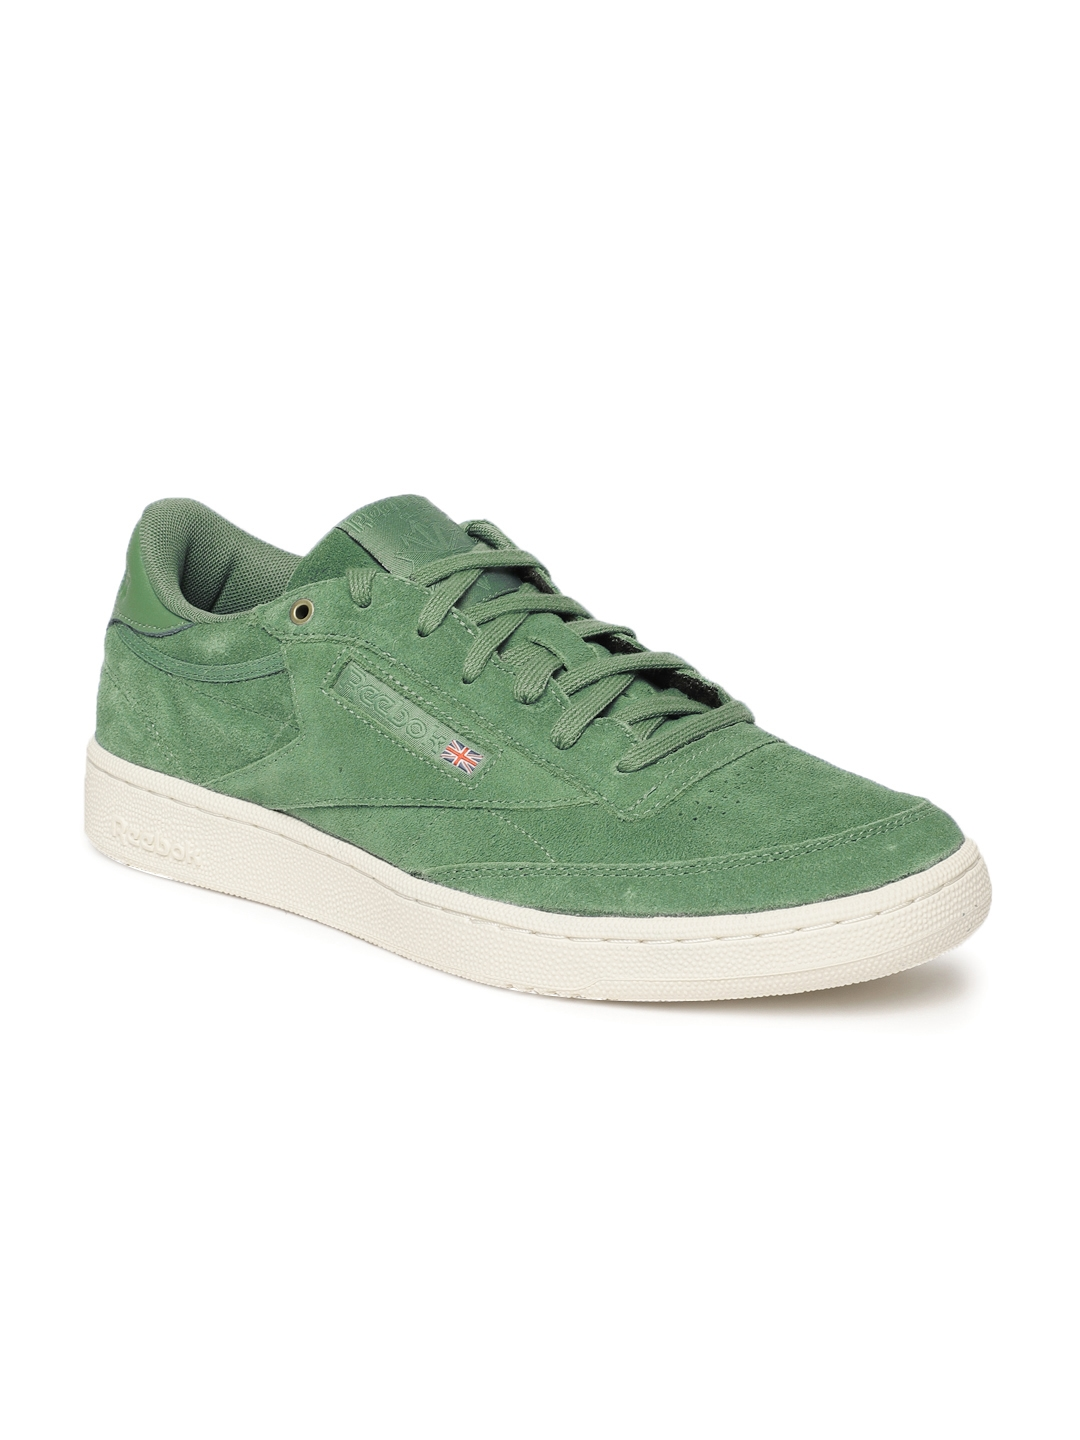 15783a1c732fc4 Buy Reebok Classic Men CLUB C 85 MCC Green Suede Sneakers - Casual ...